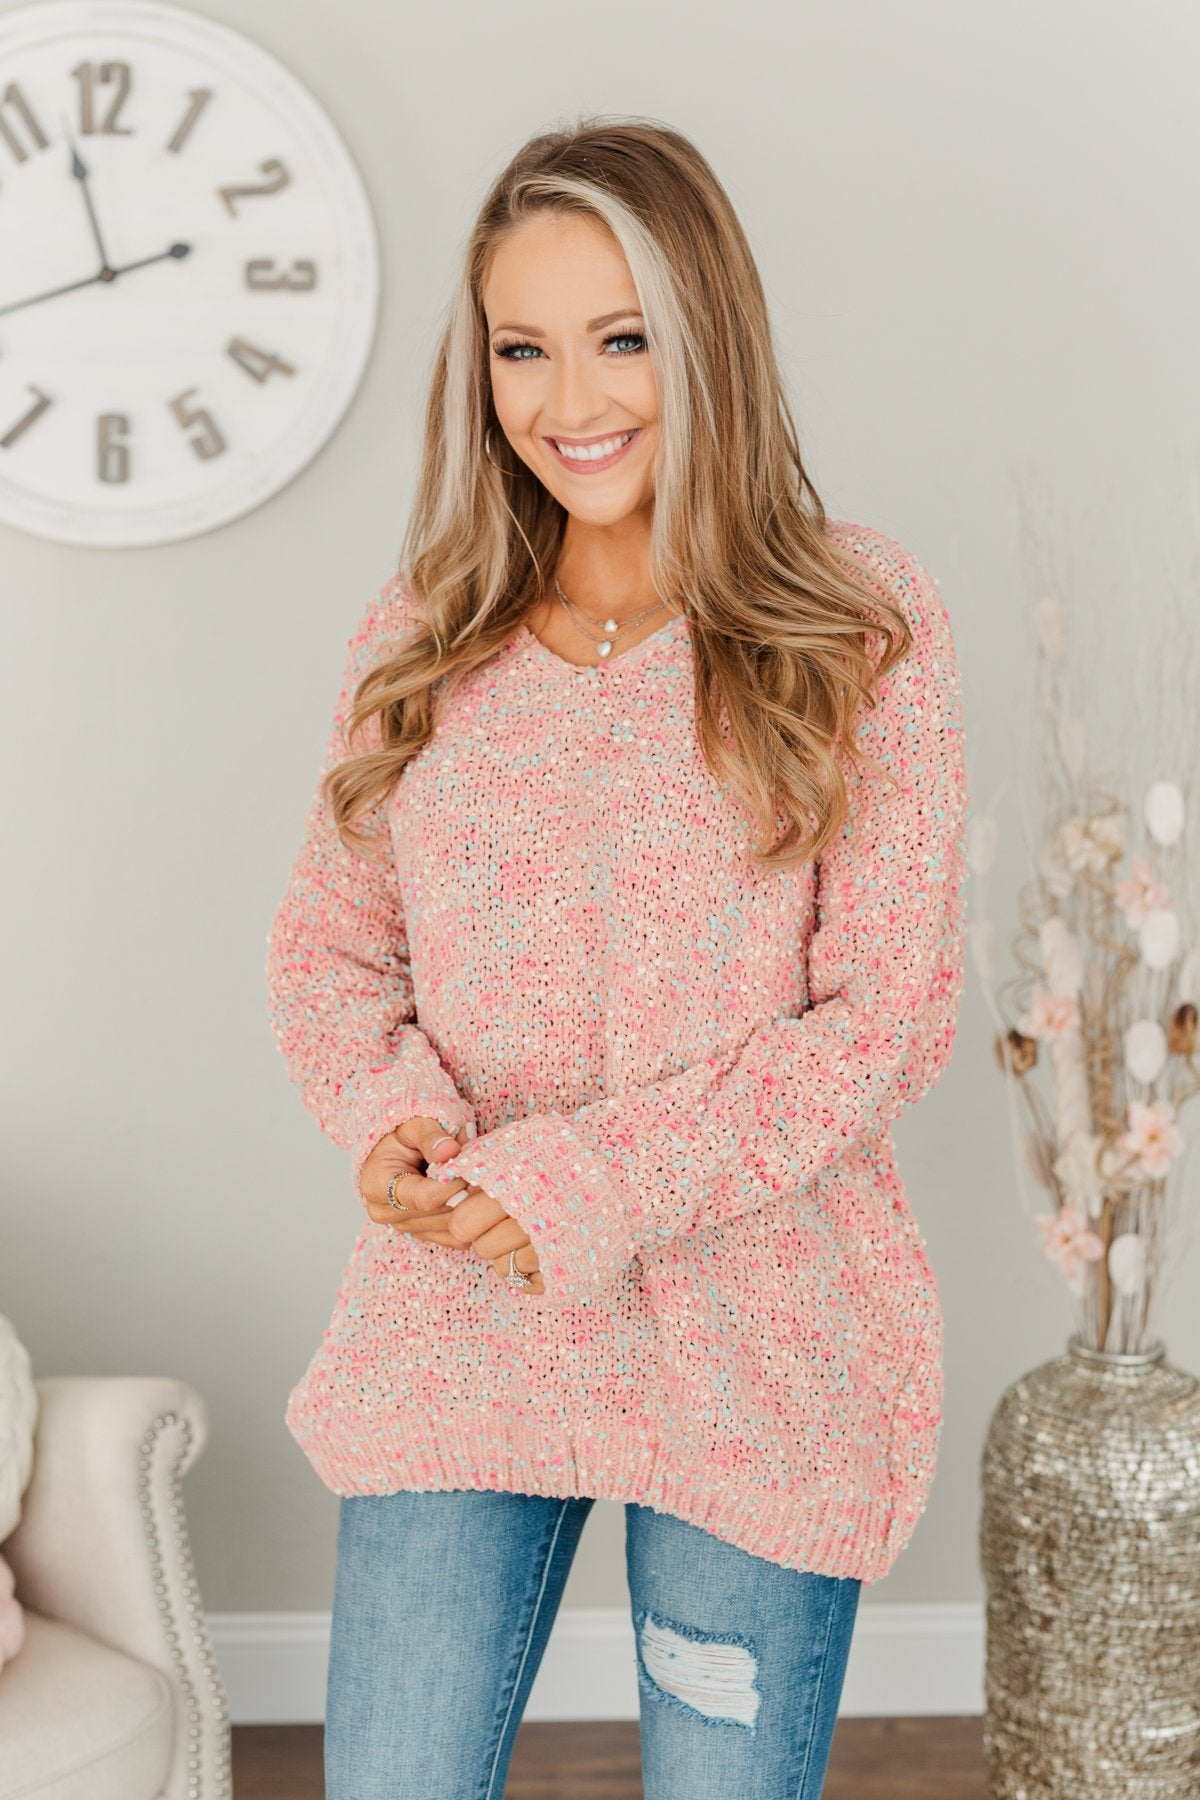 Charming Embrace Chunky Knit Sweater- Peach, Mint Blue & Pink